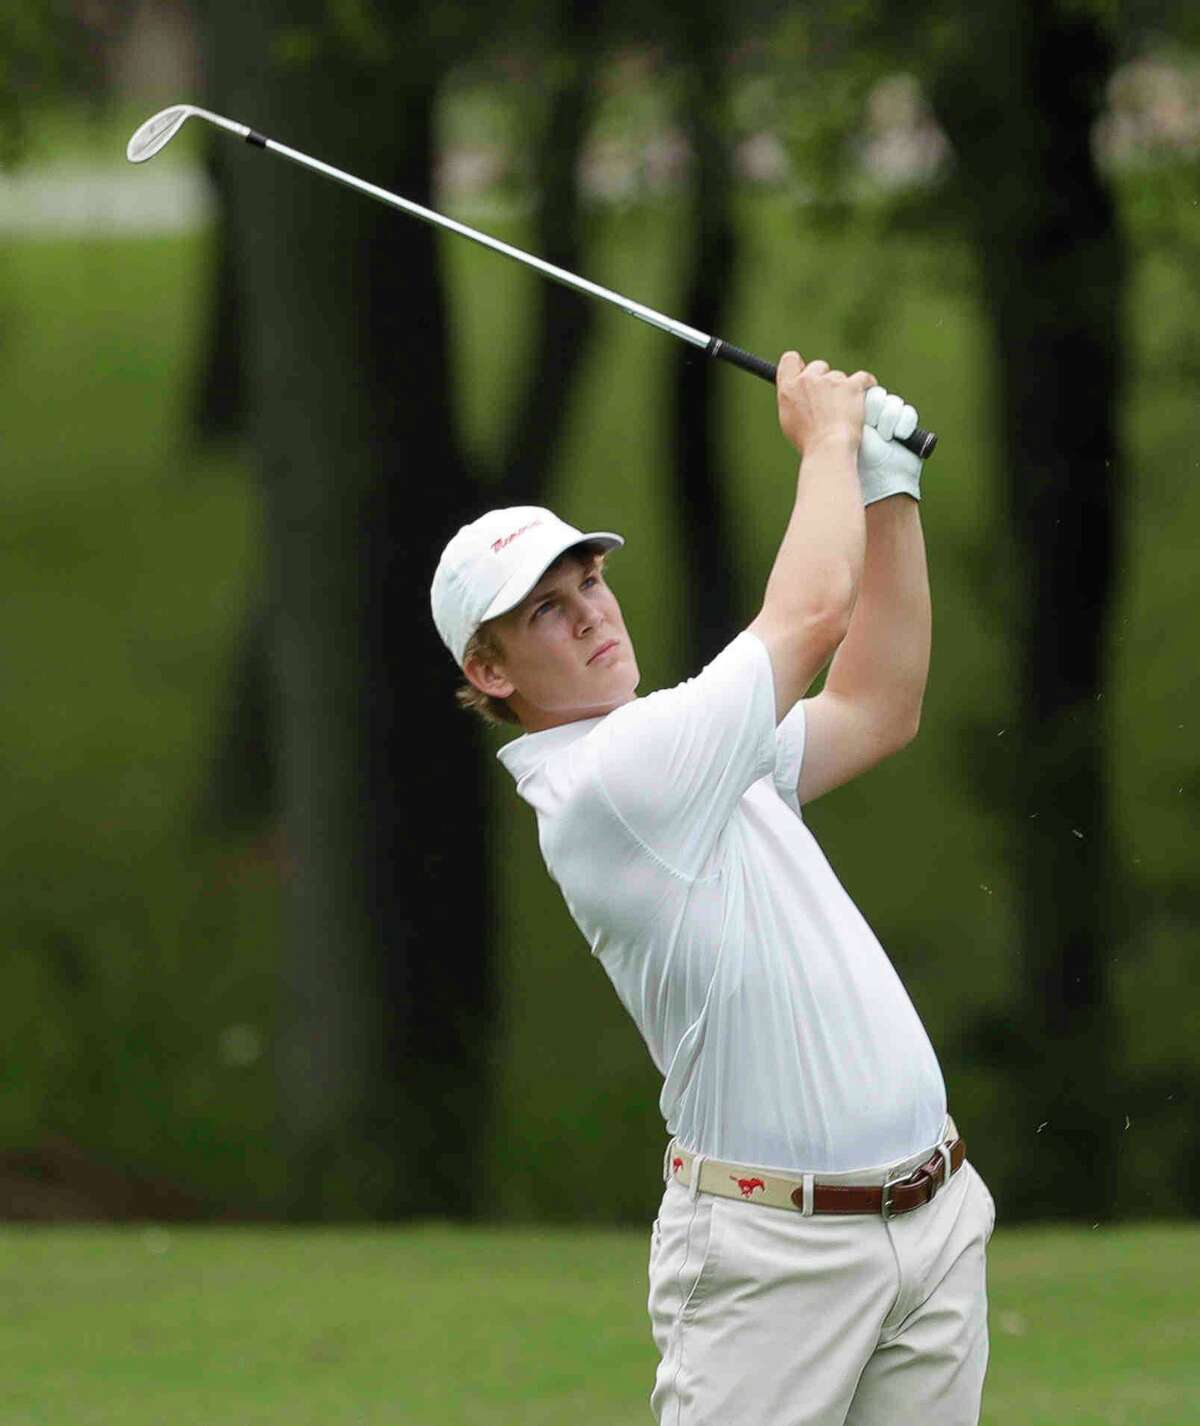 Preston Rouse of Memorial watches his second shot from the 9th fairway during the Class 6A UIL State Golf Championship at Legacy Hills Golf Club, Tuesday, May 18, 2021, in Georgetown.